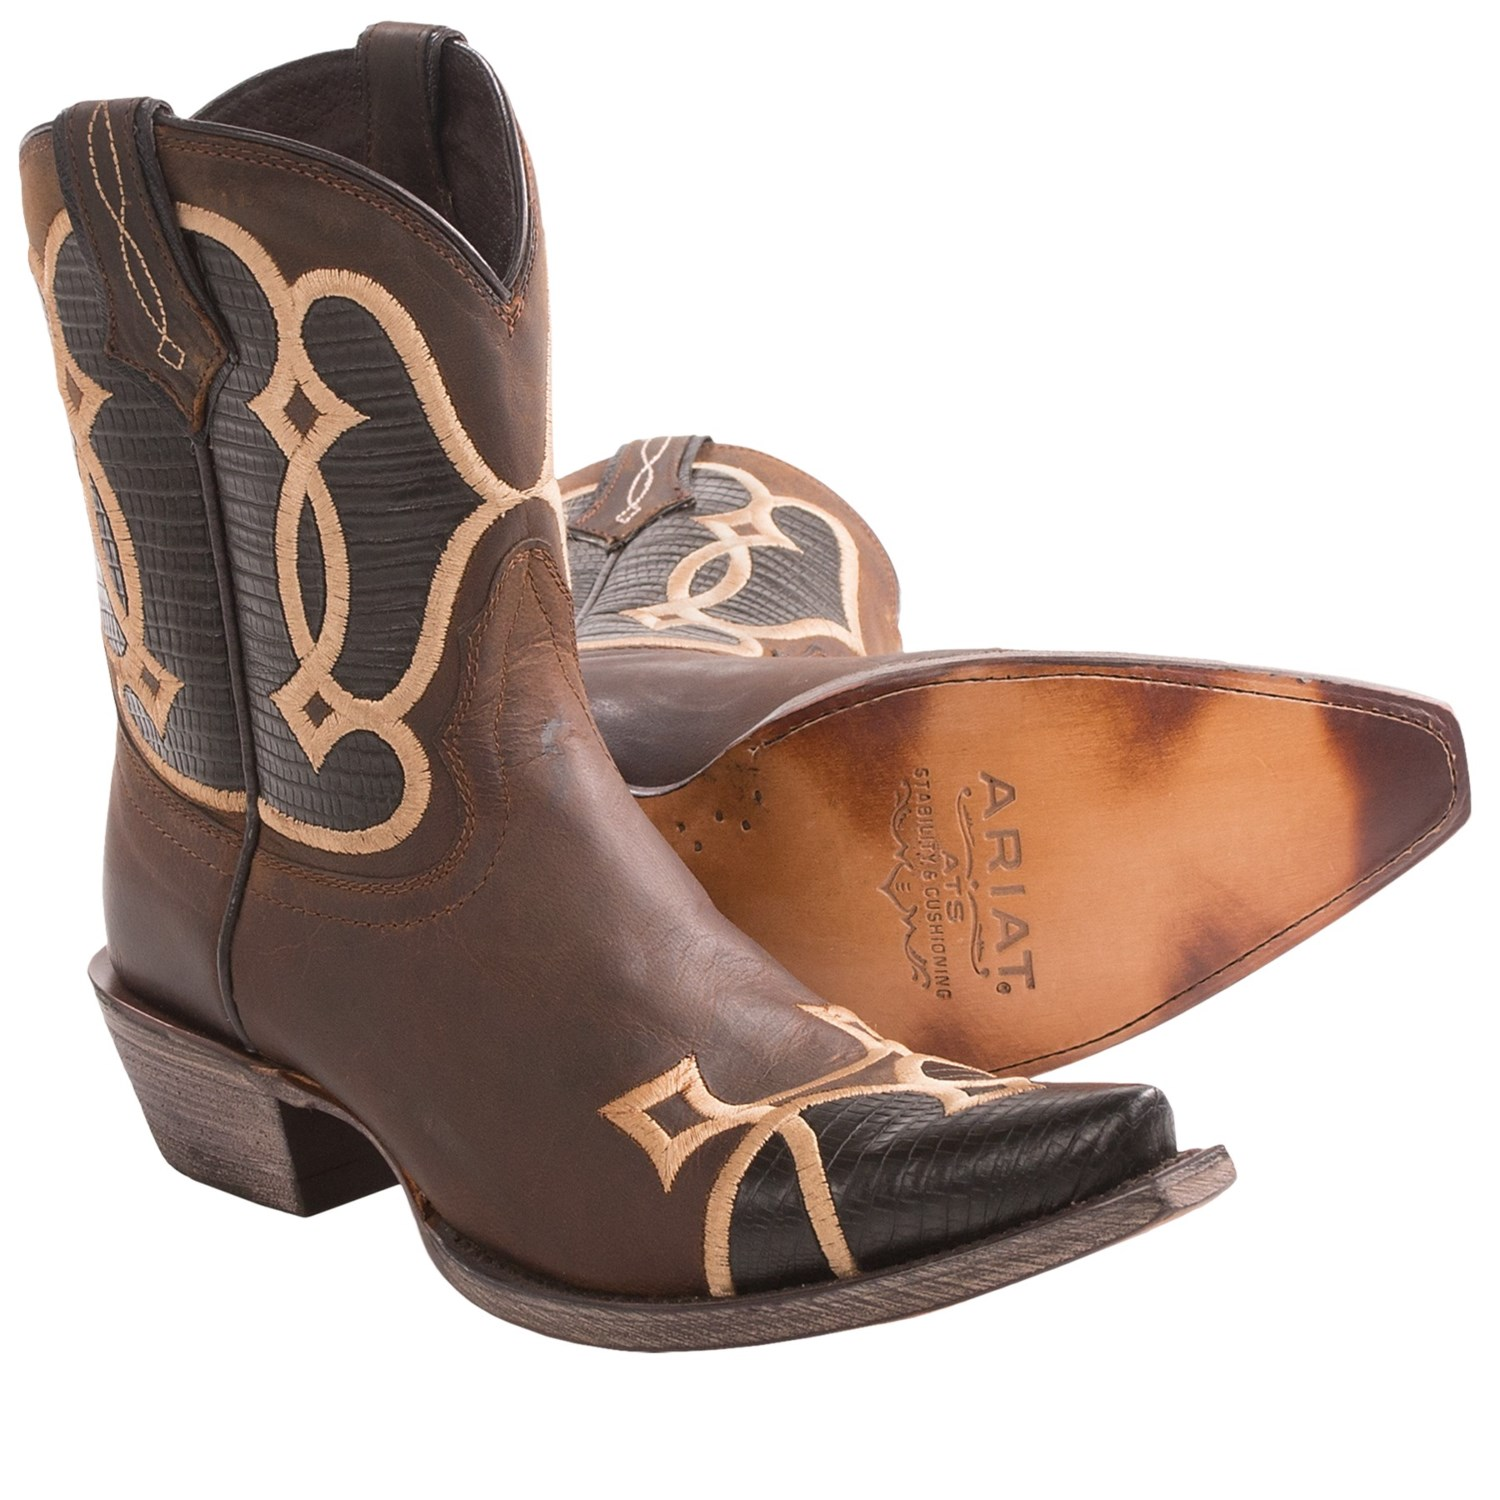 Ariat Women's Endurance Athletic Casual Timber Ridge Brown Shoes